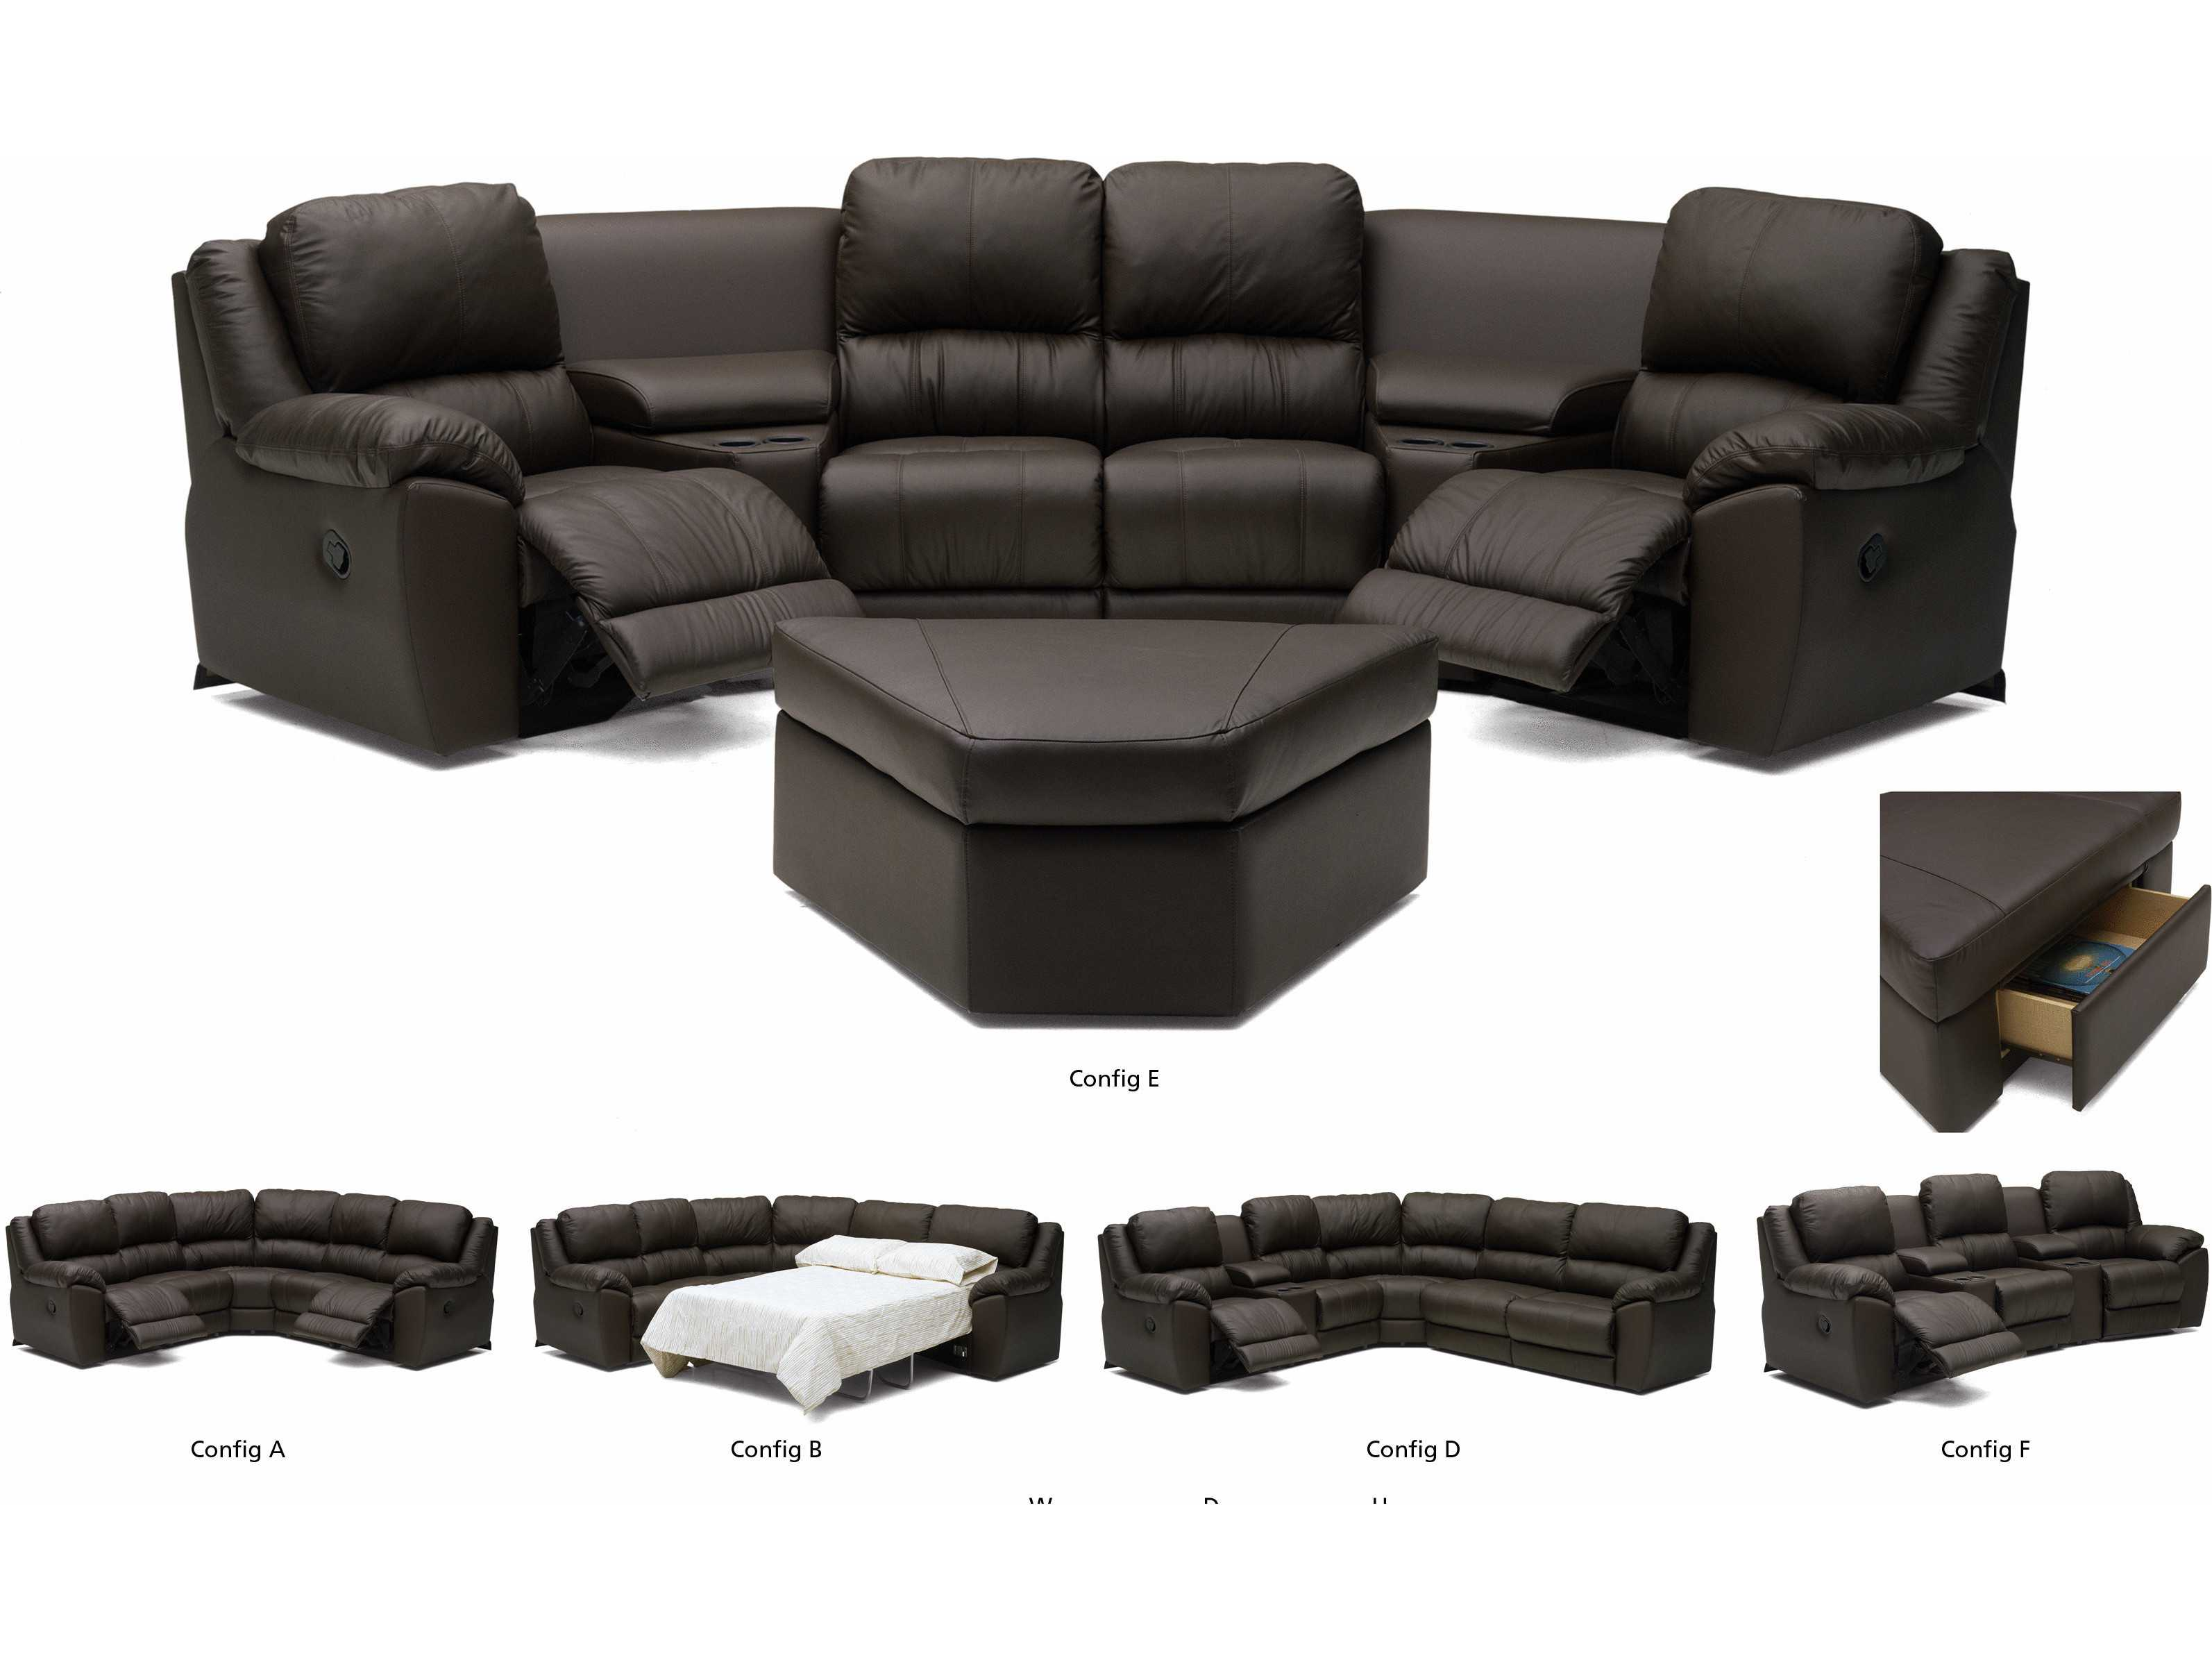 Home Theater Reclining Sectional Sofa Hereo Sofa